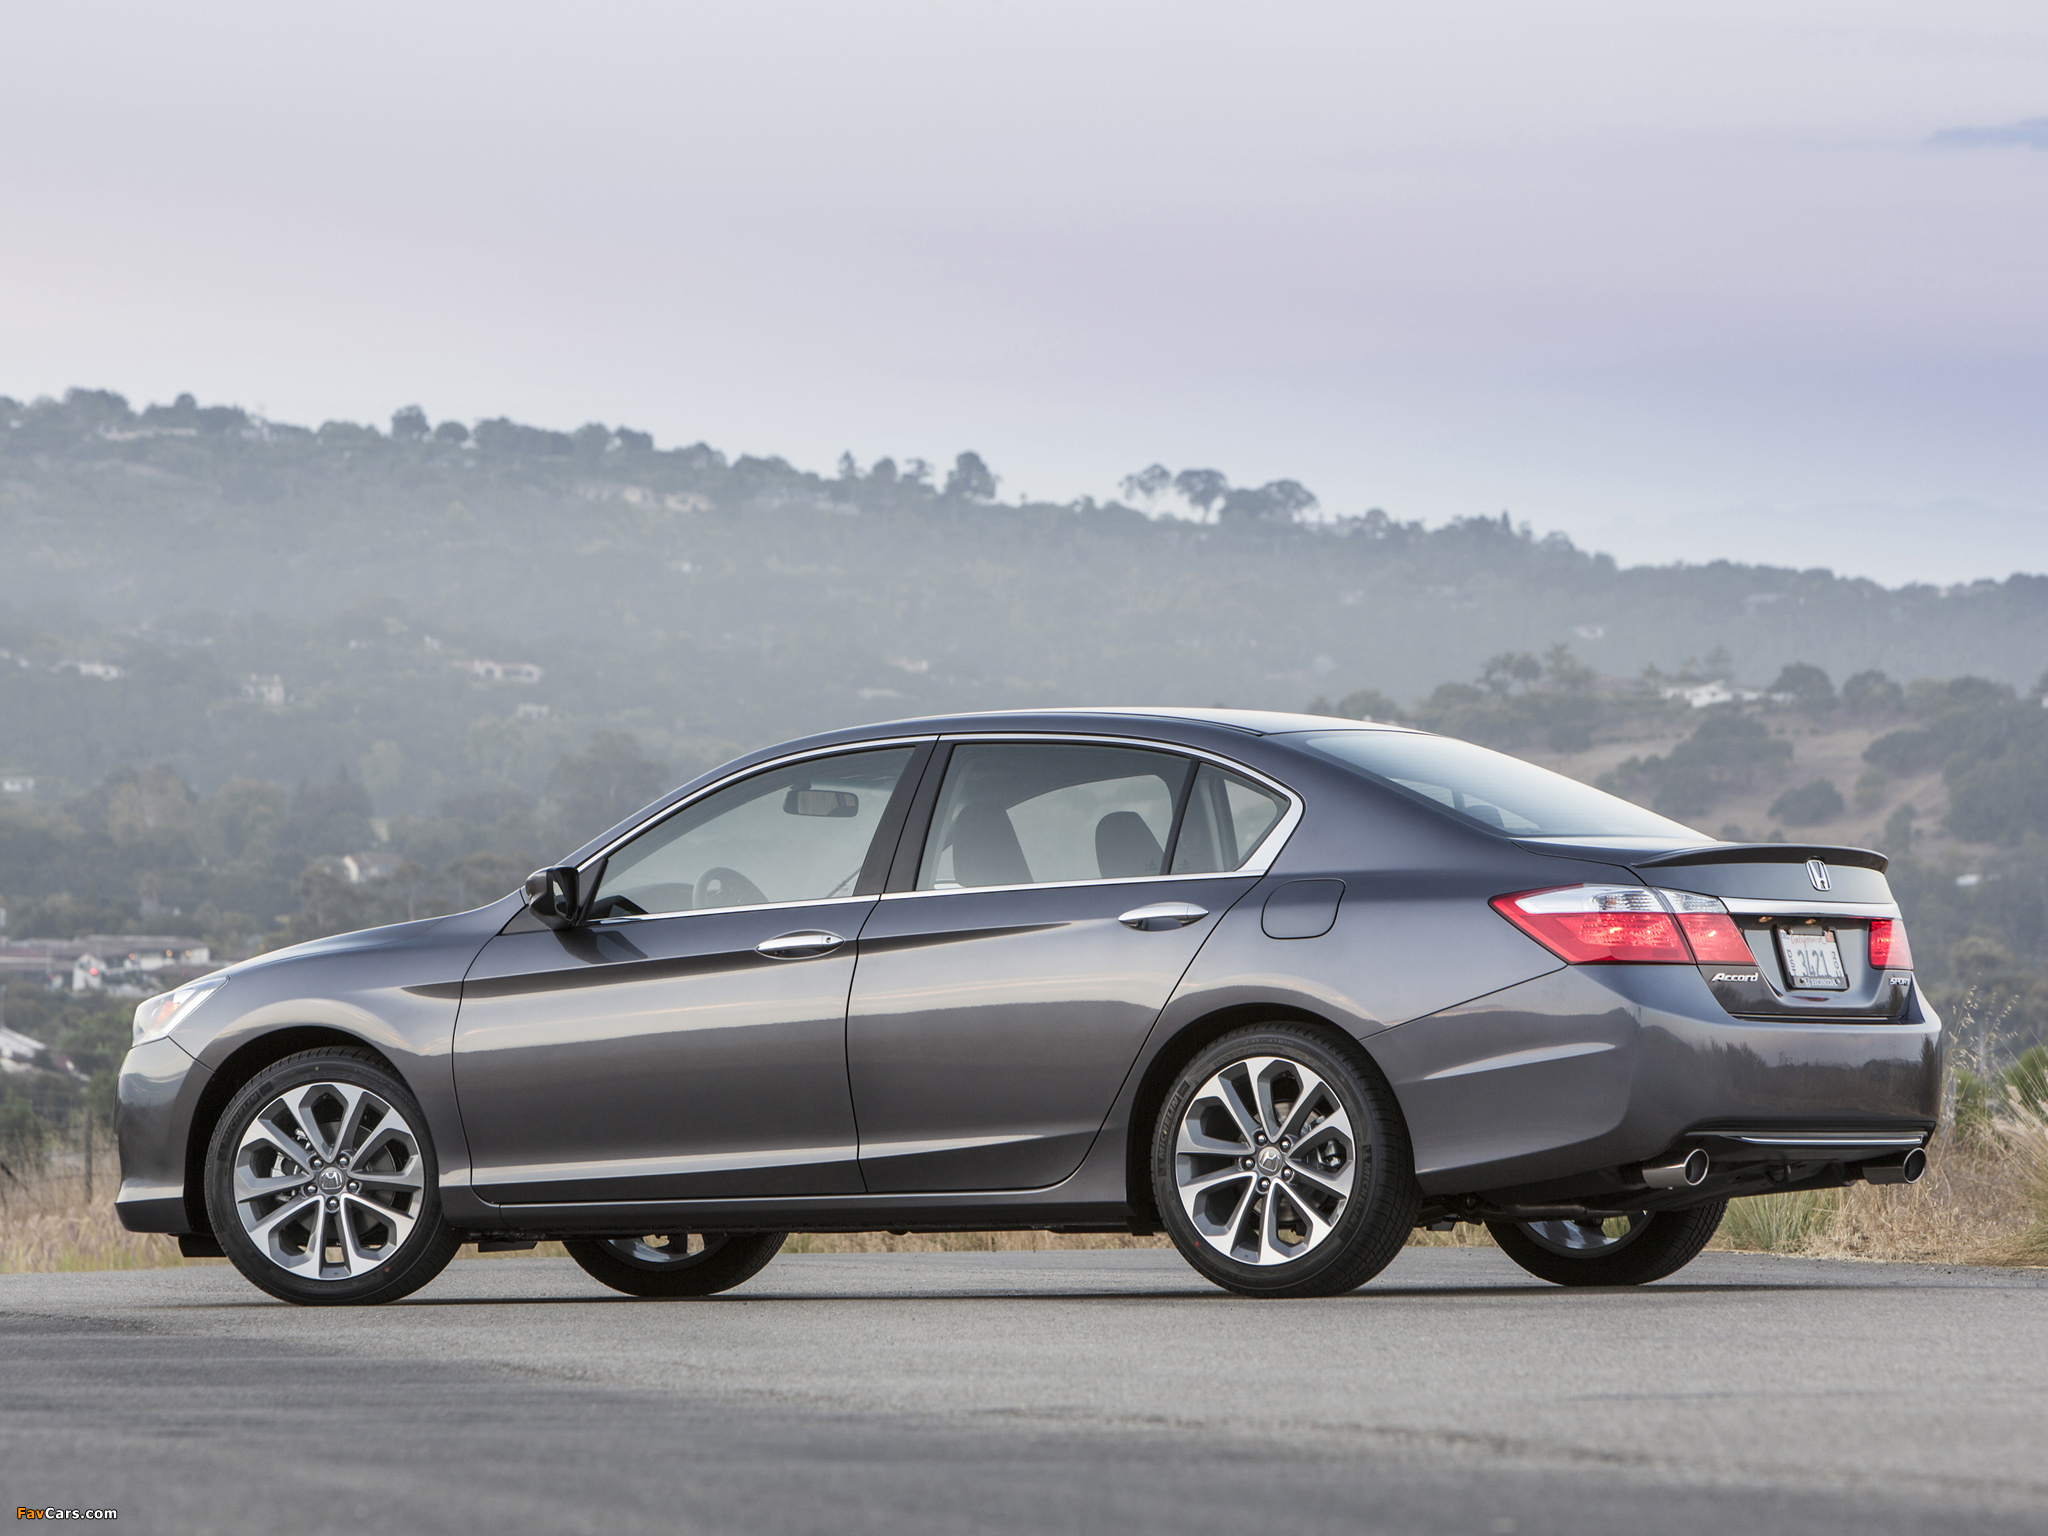 Honda Accord Sport >> Honda Accord Sport Sedan 2012 wallpapers (2048x1536)